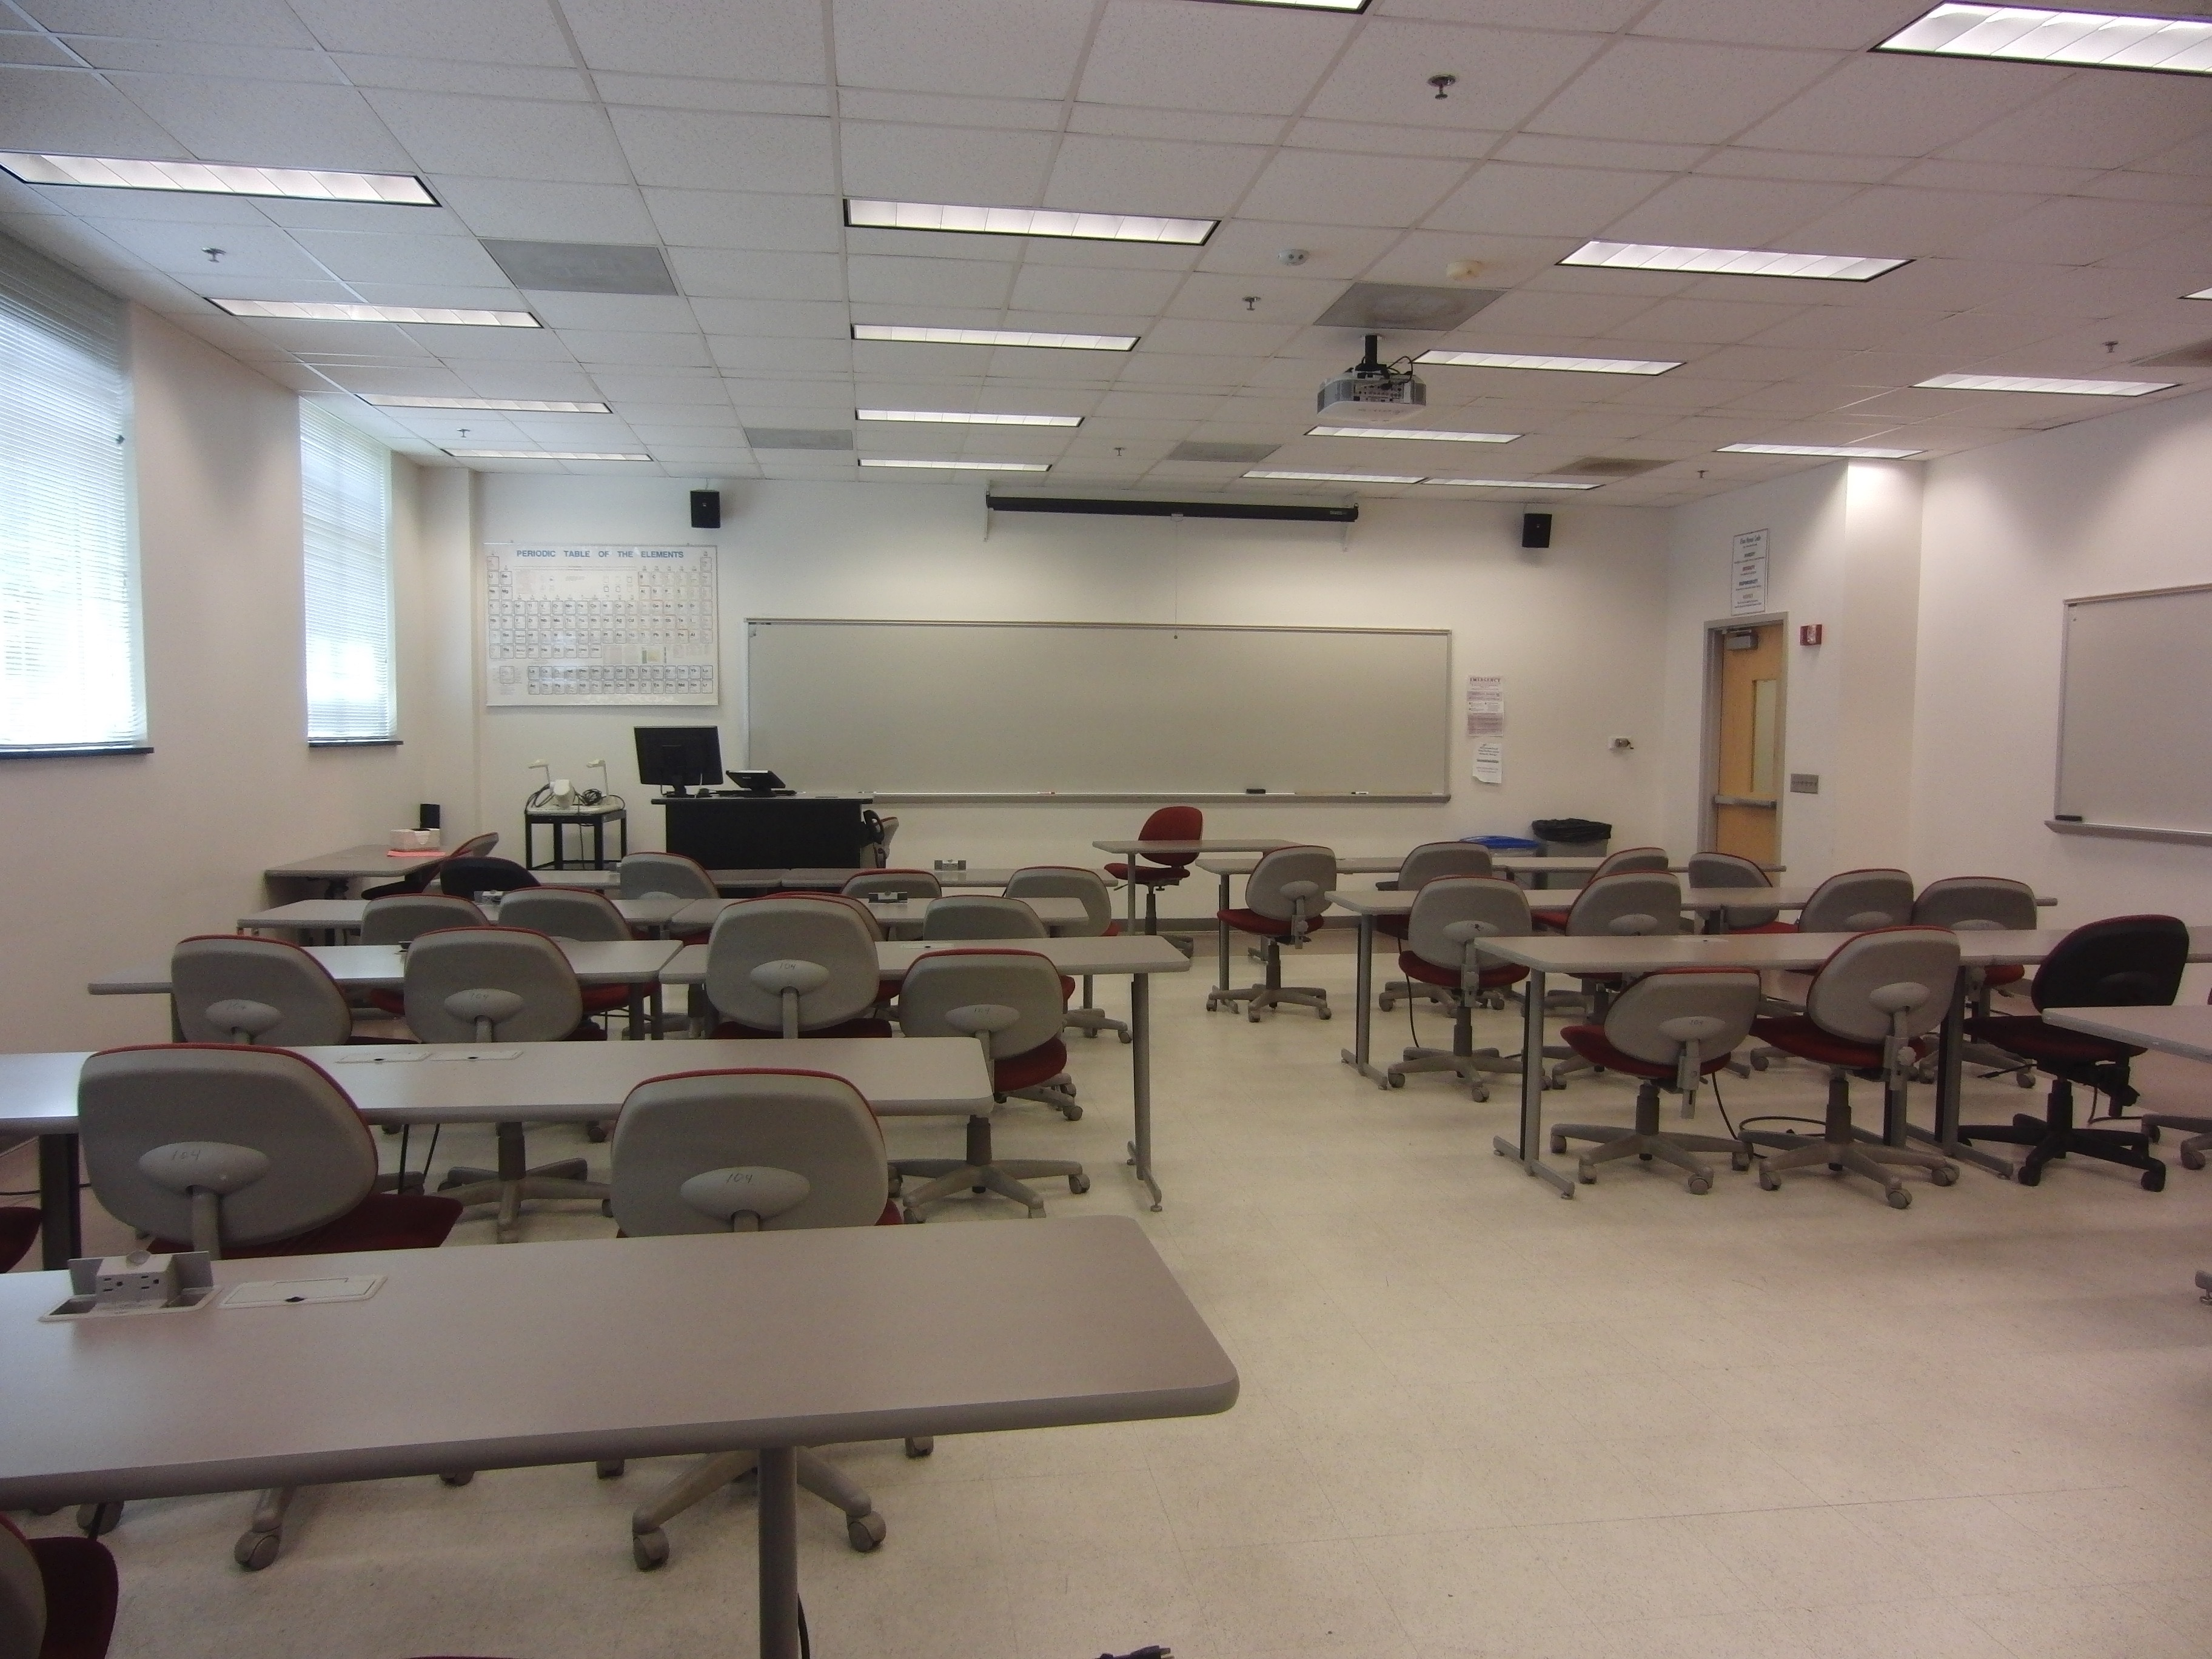 Photo of the classroom space taken from the back of the room showing the stationary furniture, the mobile chairs, the instructor station, the exit door, and a white board